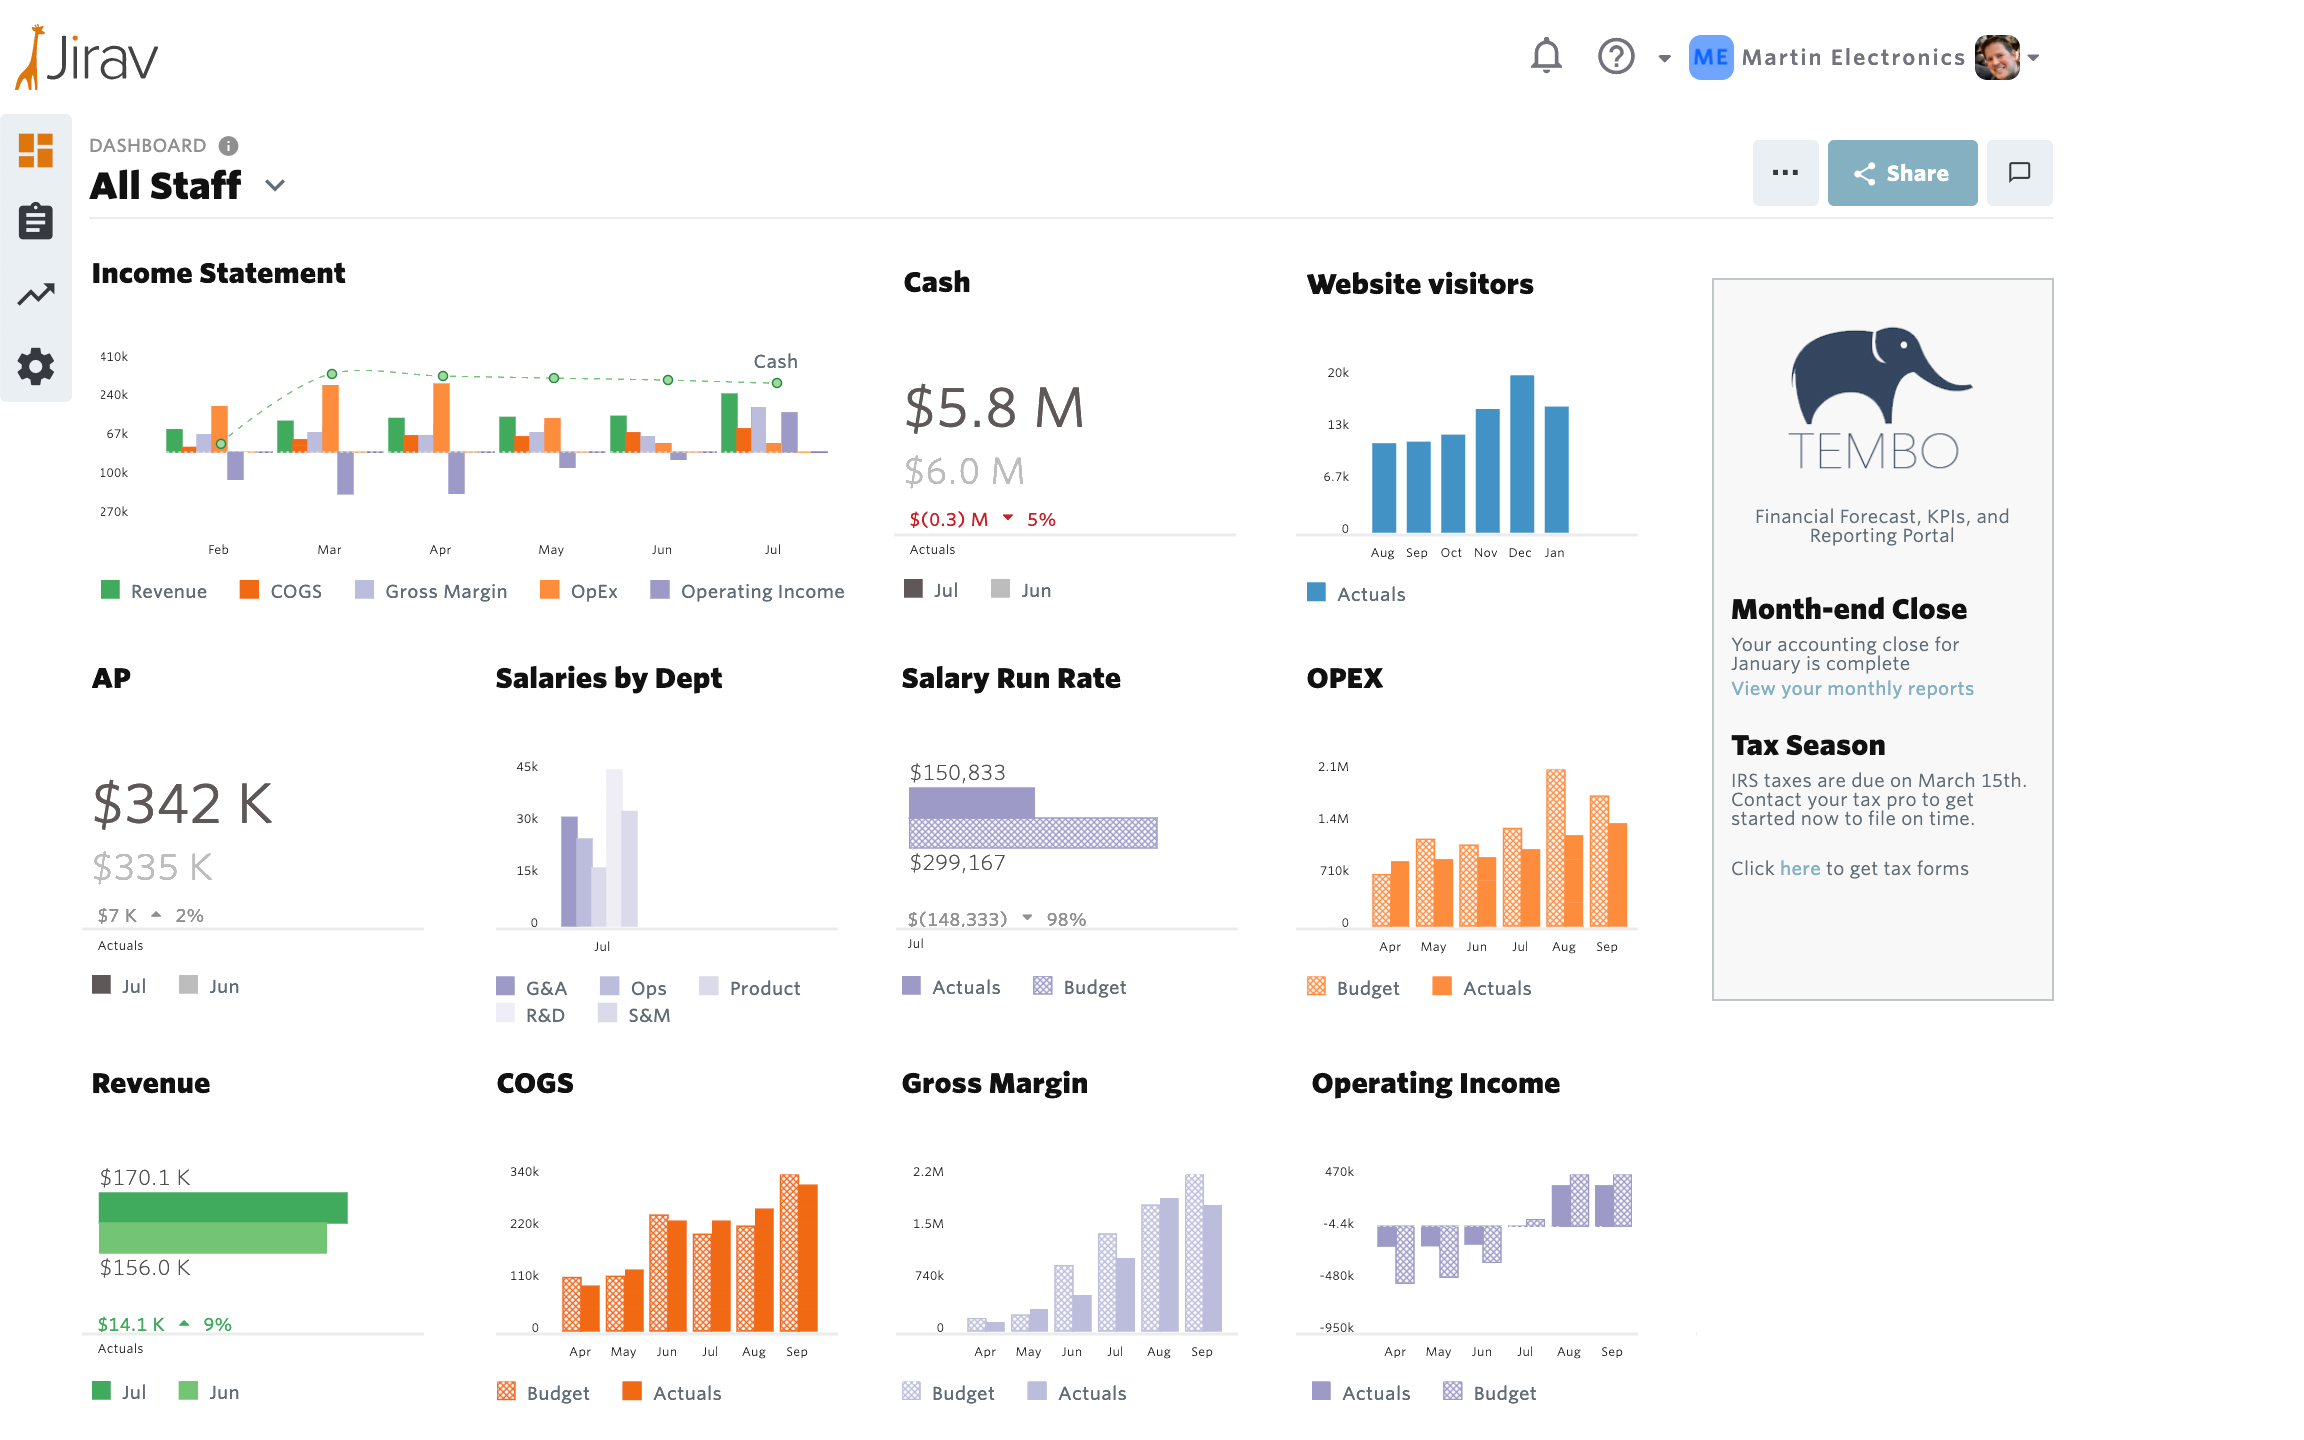 dashboard-custom-kpis